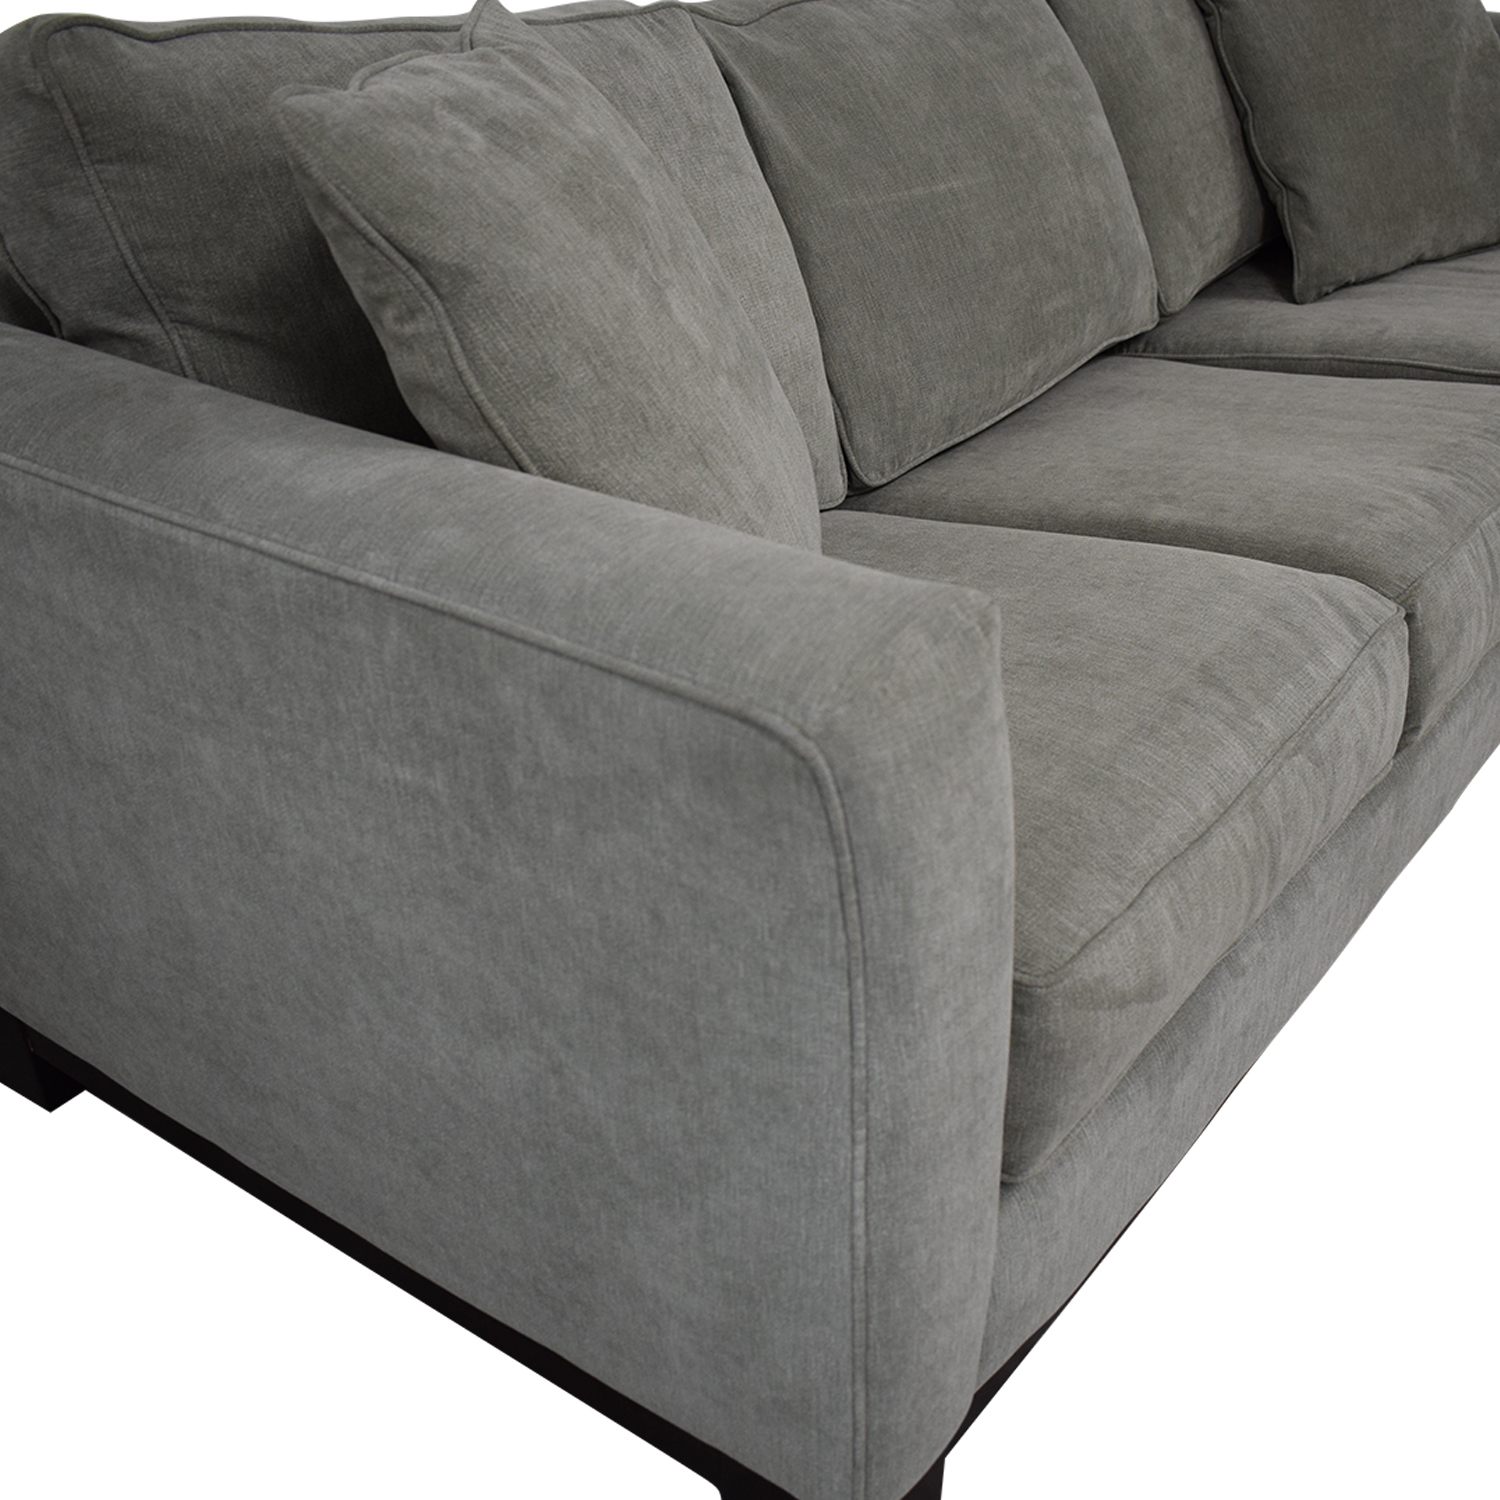 Macy's Macy's Queen Sleeper Sofa dimensions